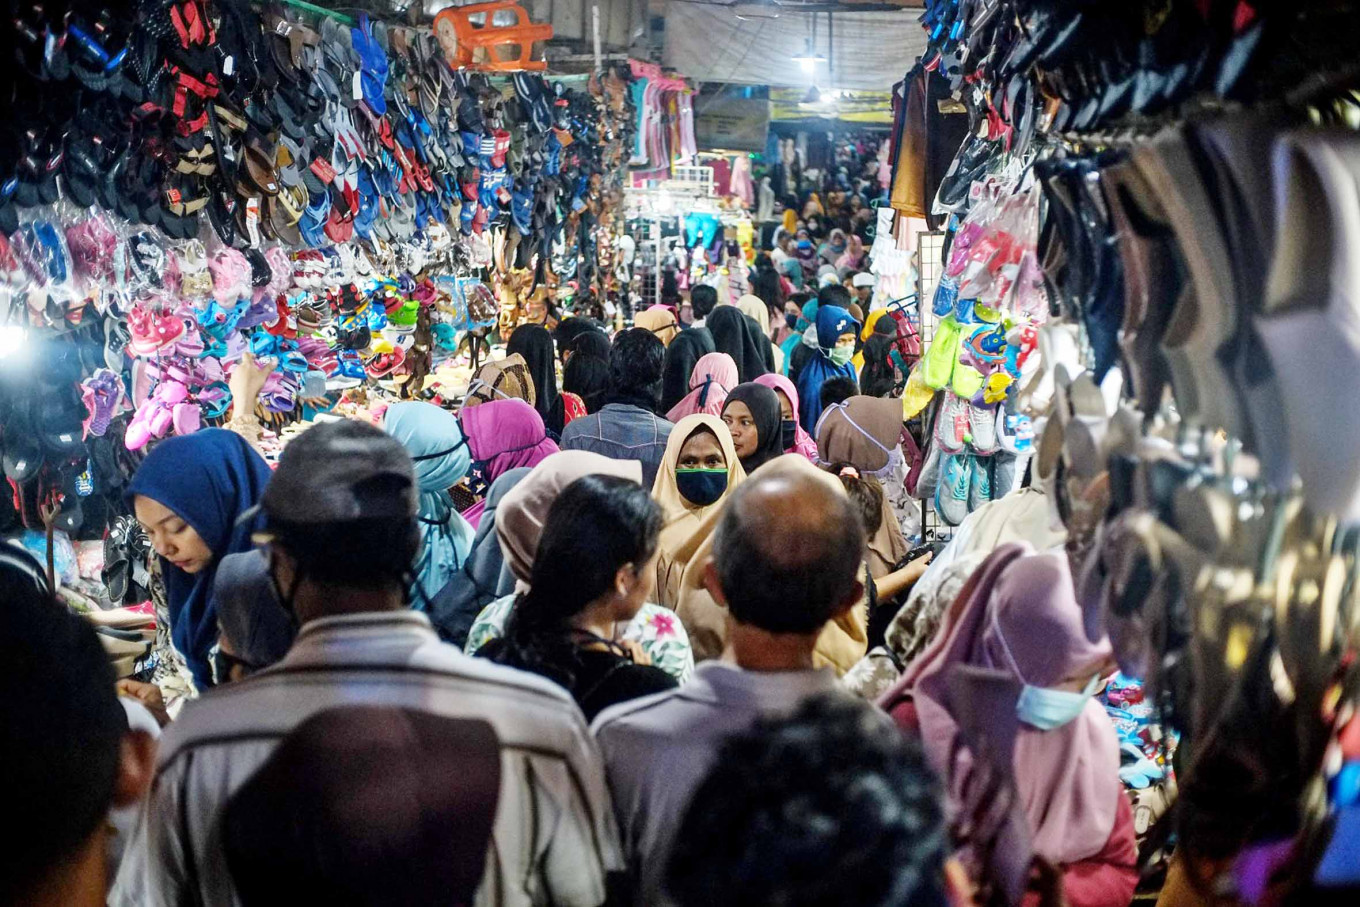 Indonesian wet markets carry high risk of virus transmission